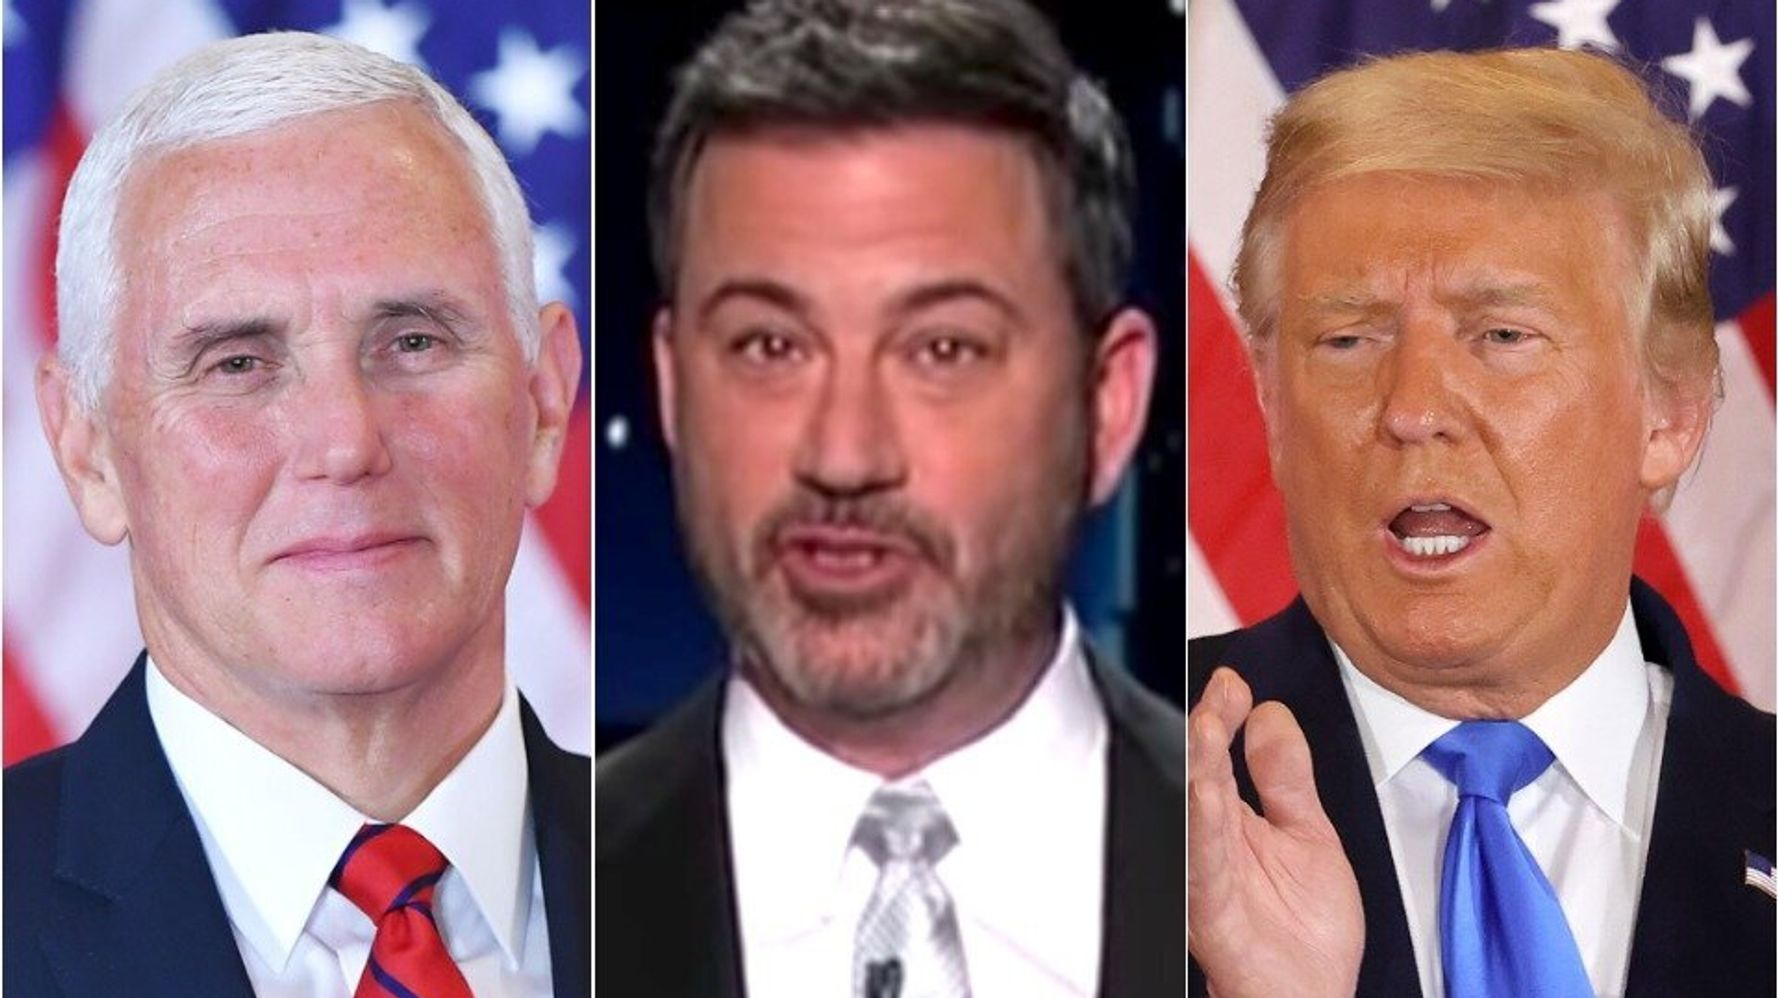 Mike Pence Vs. Donald Trump? Jimmy Kimmel Spots The VP's 'Sneaky' Twitter Move